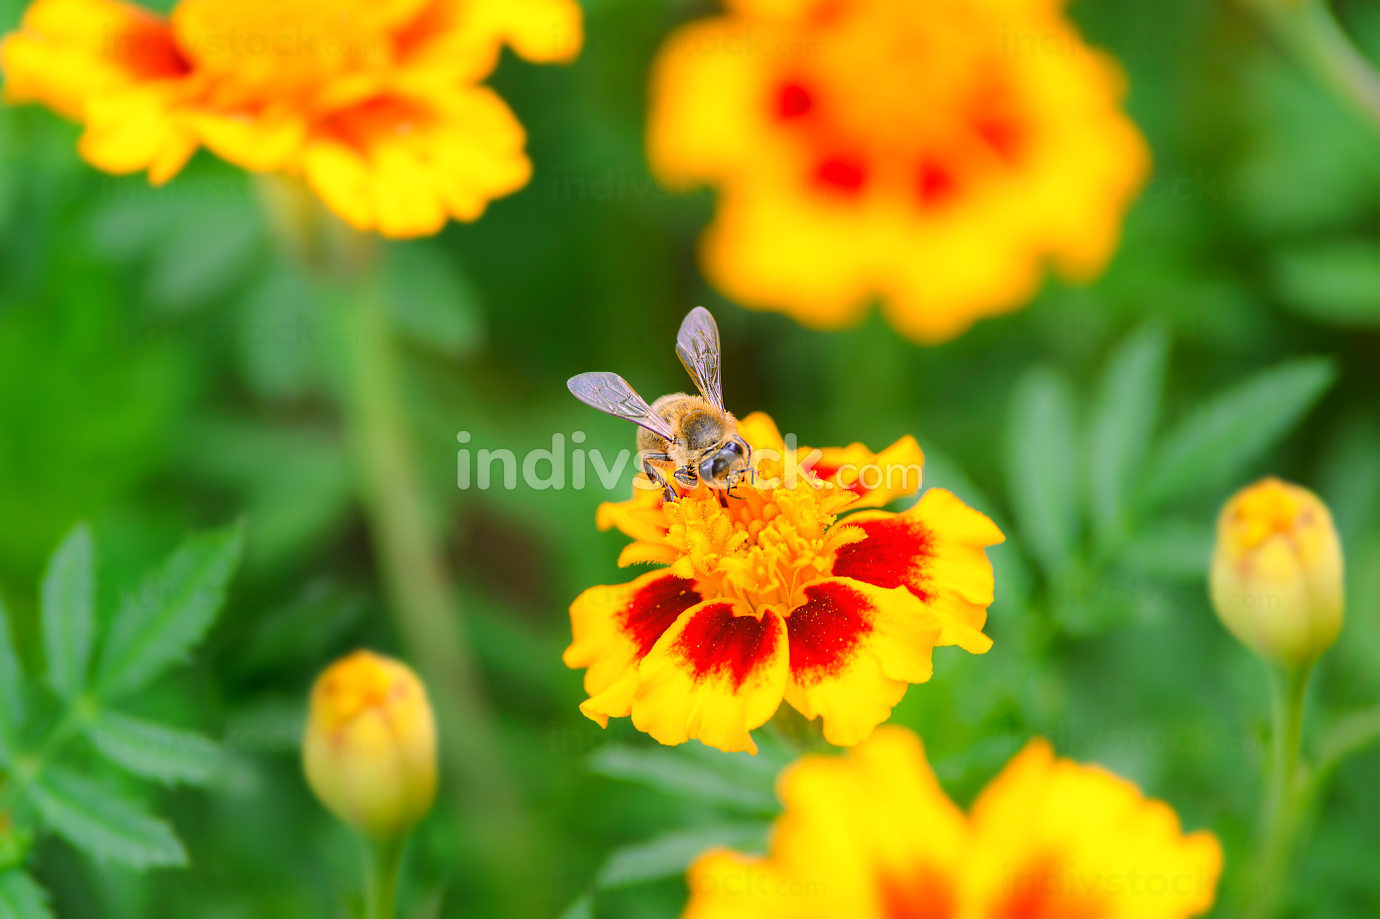 Bee on a calendula flower in close-up